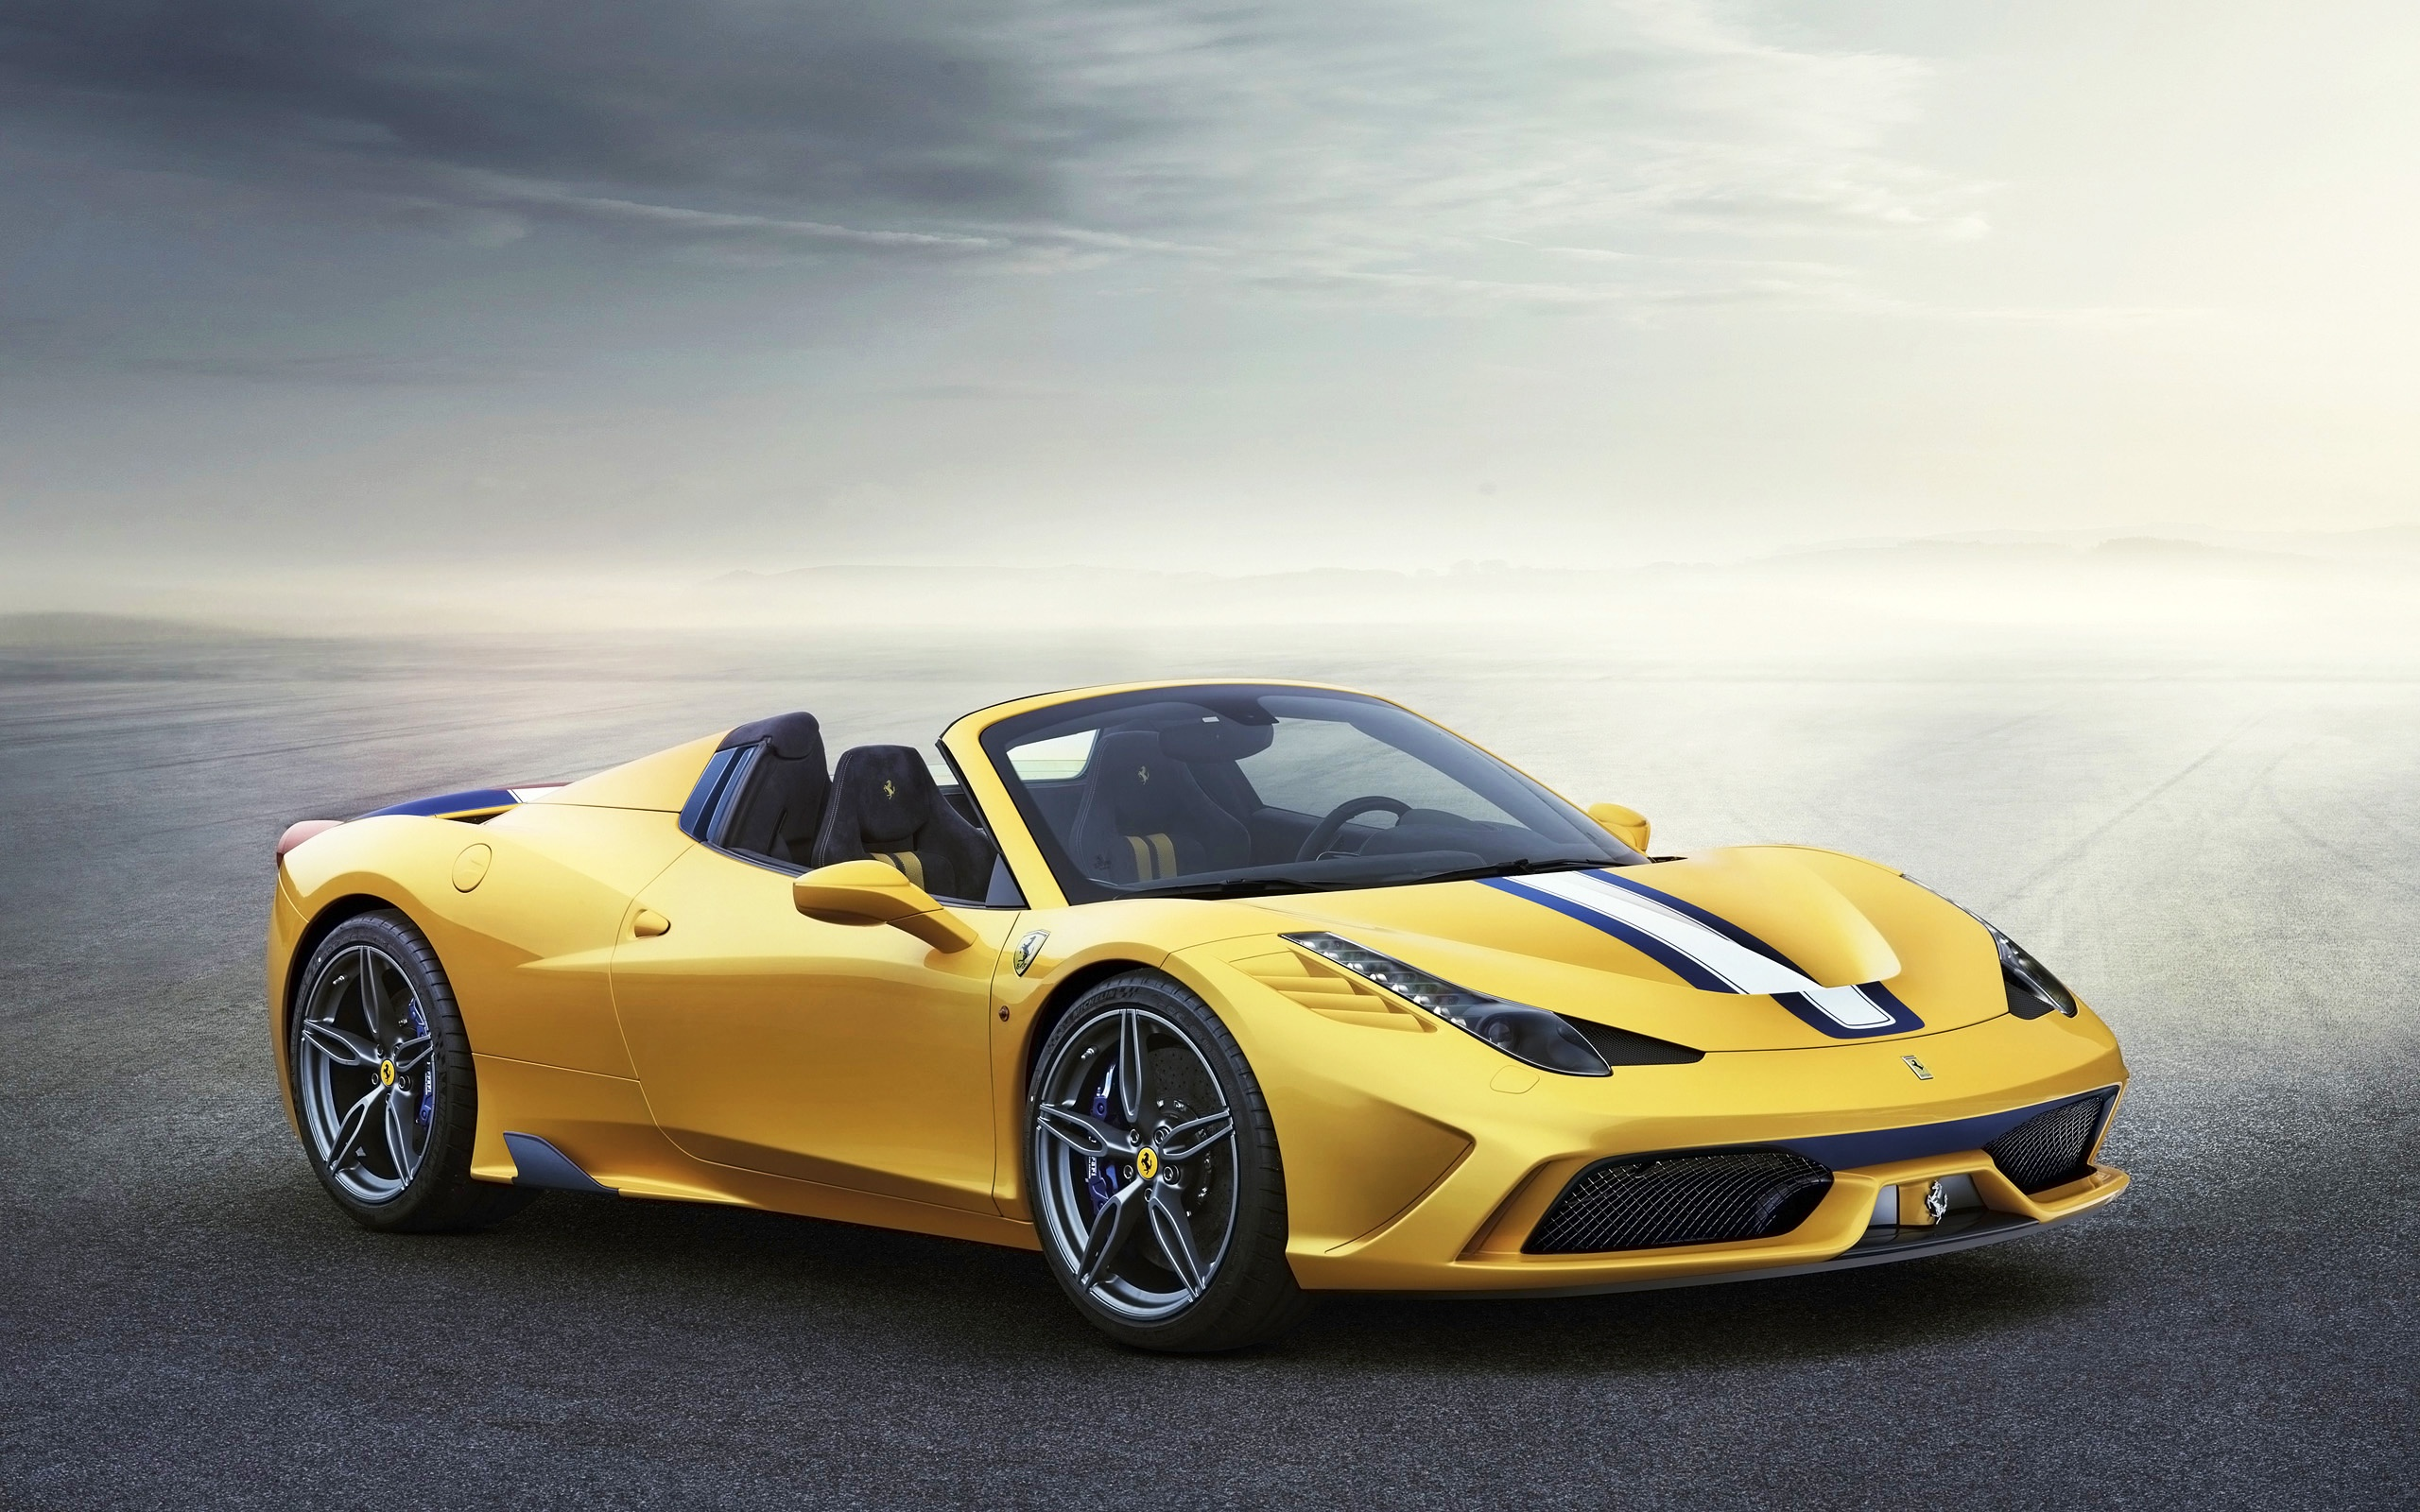 Download Wallpaper Ferrari 458 Speciale A 2015 Downloadfycom